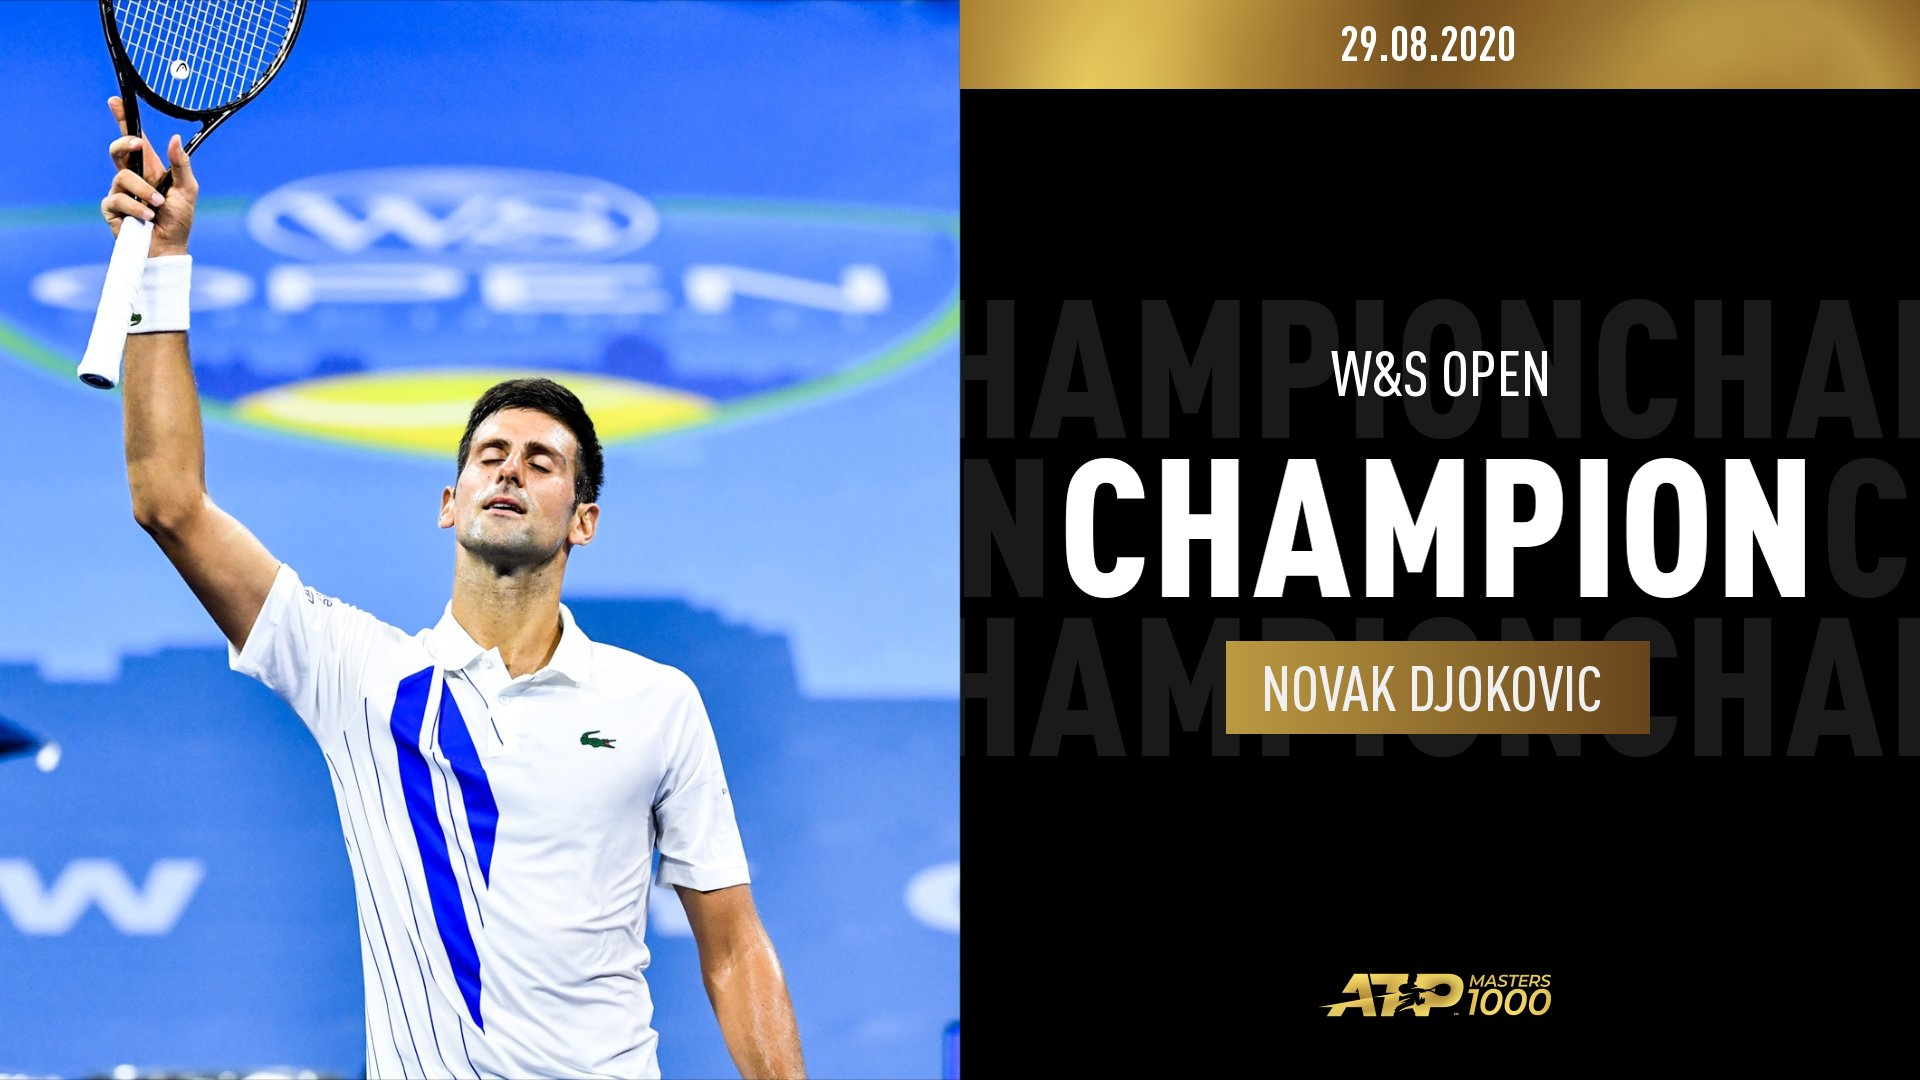 Novak Djokovic Wins Cincinnati Open Final After A Clumsy Start Against Milos Raonic Firstsportz